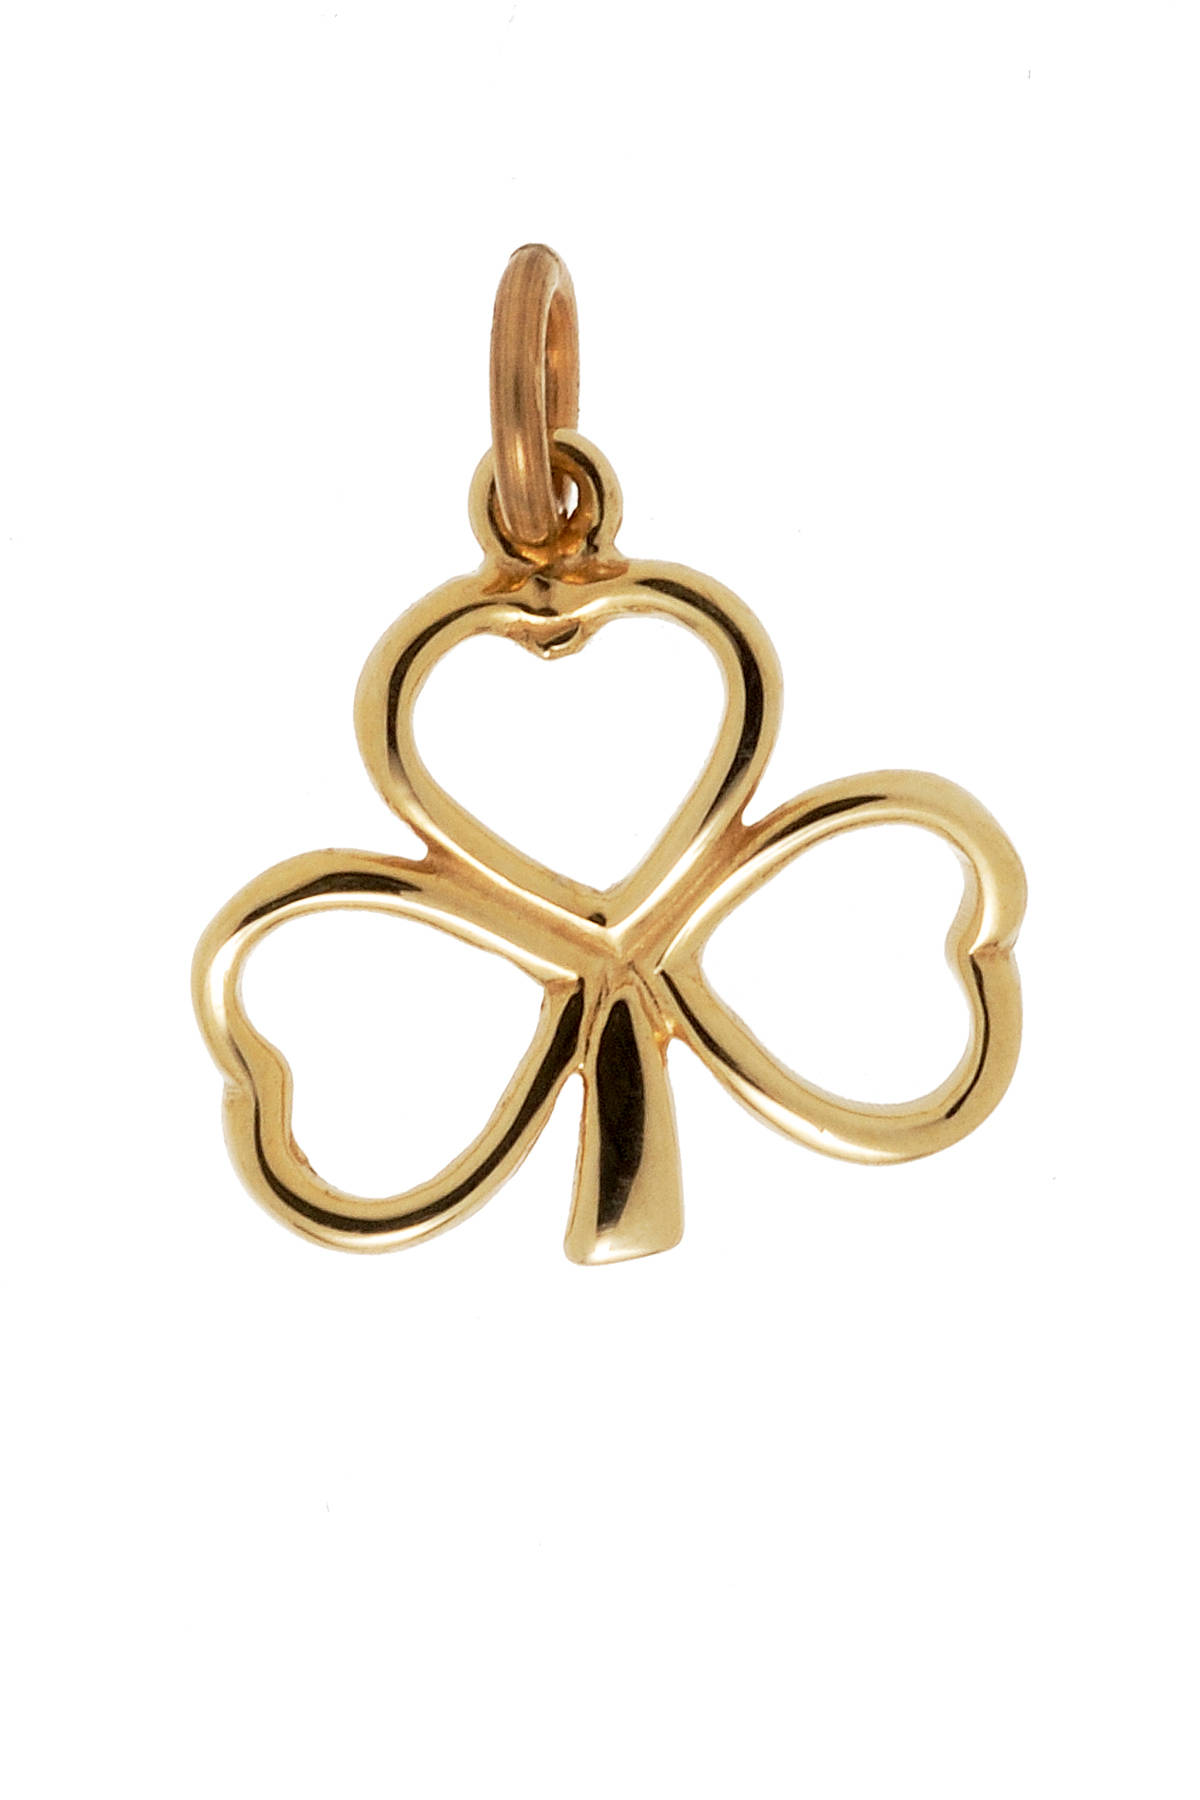 10 carat yellow gold open shamrock charm(no chain)12mmX14mm